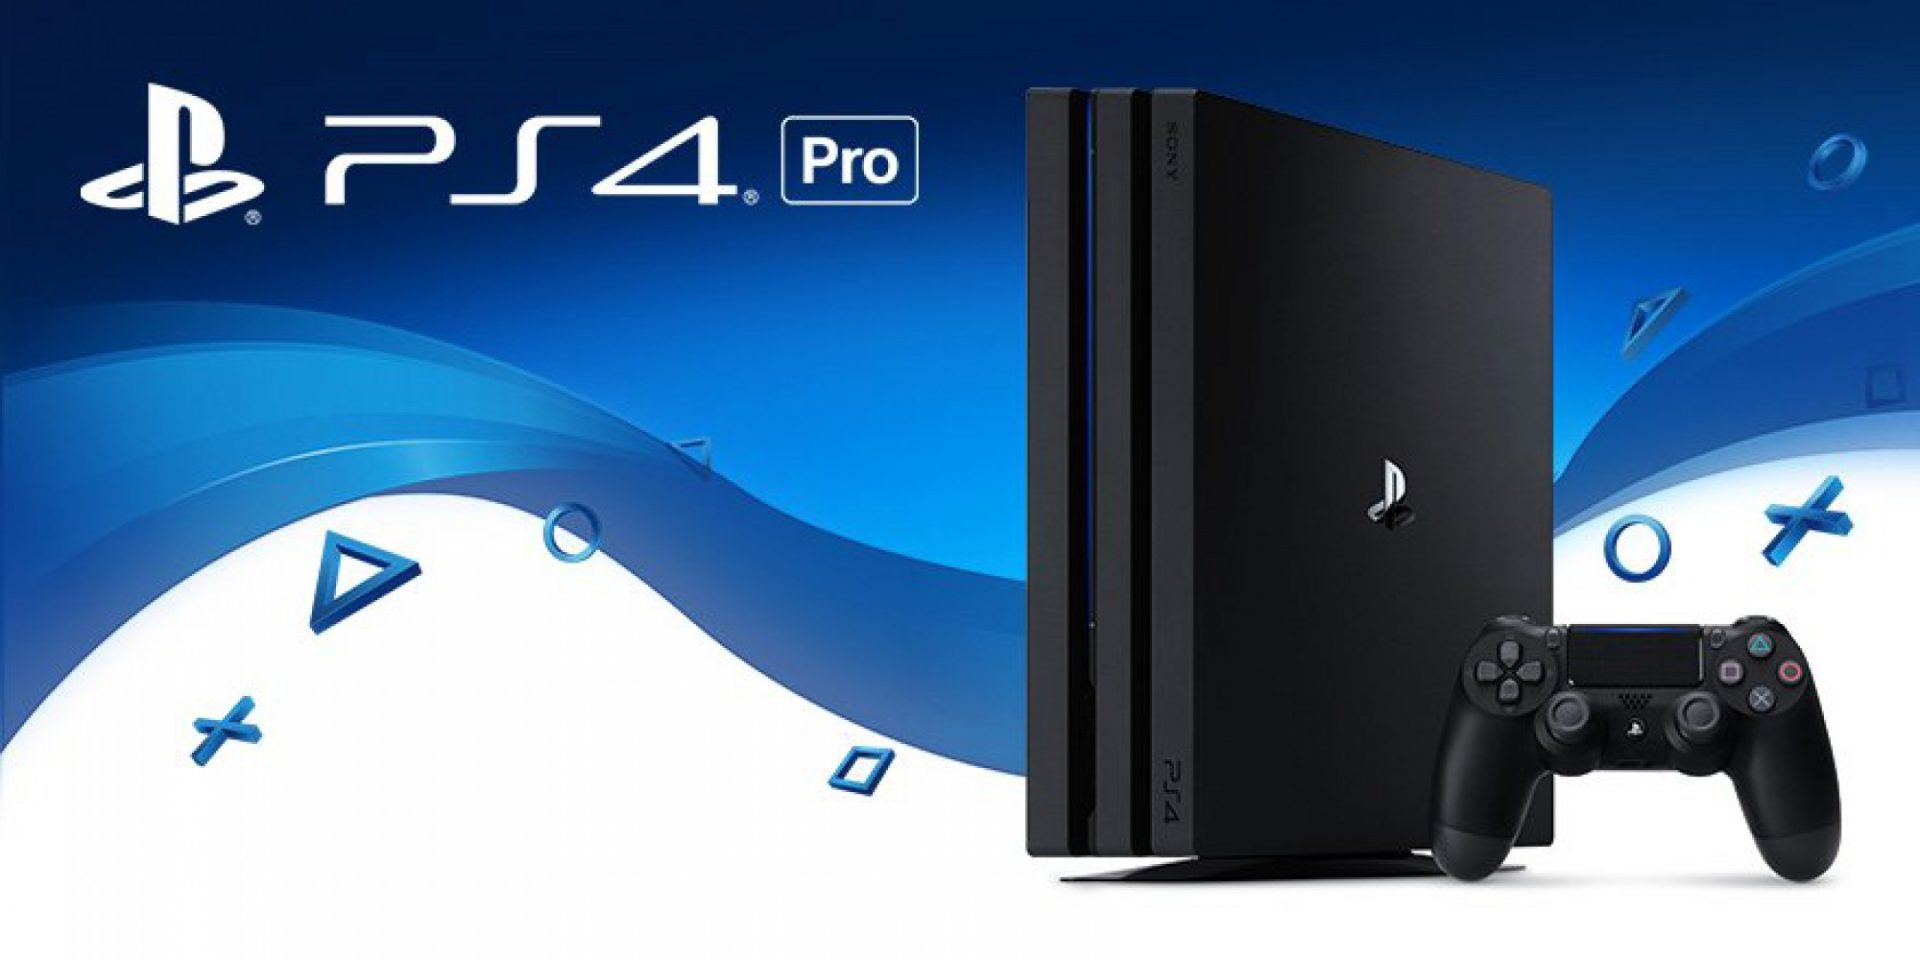 PlayStation 4 Pro Optimized Games Available at Launch Revealed